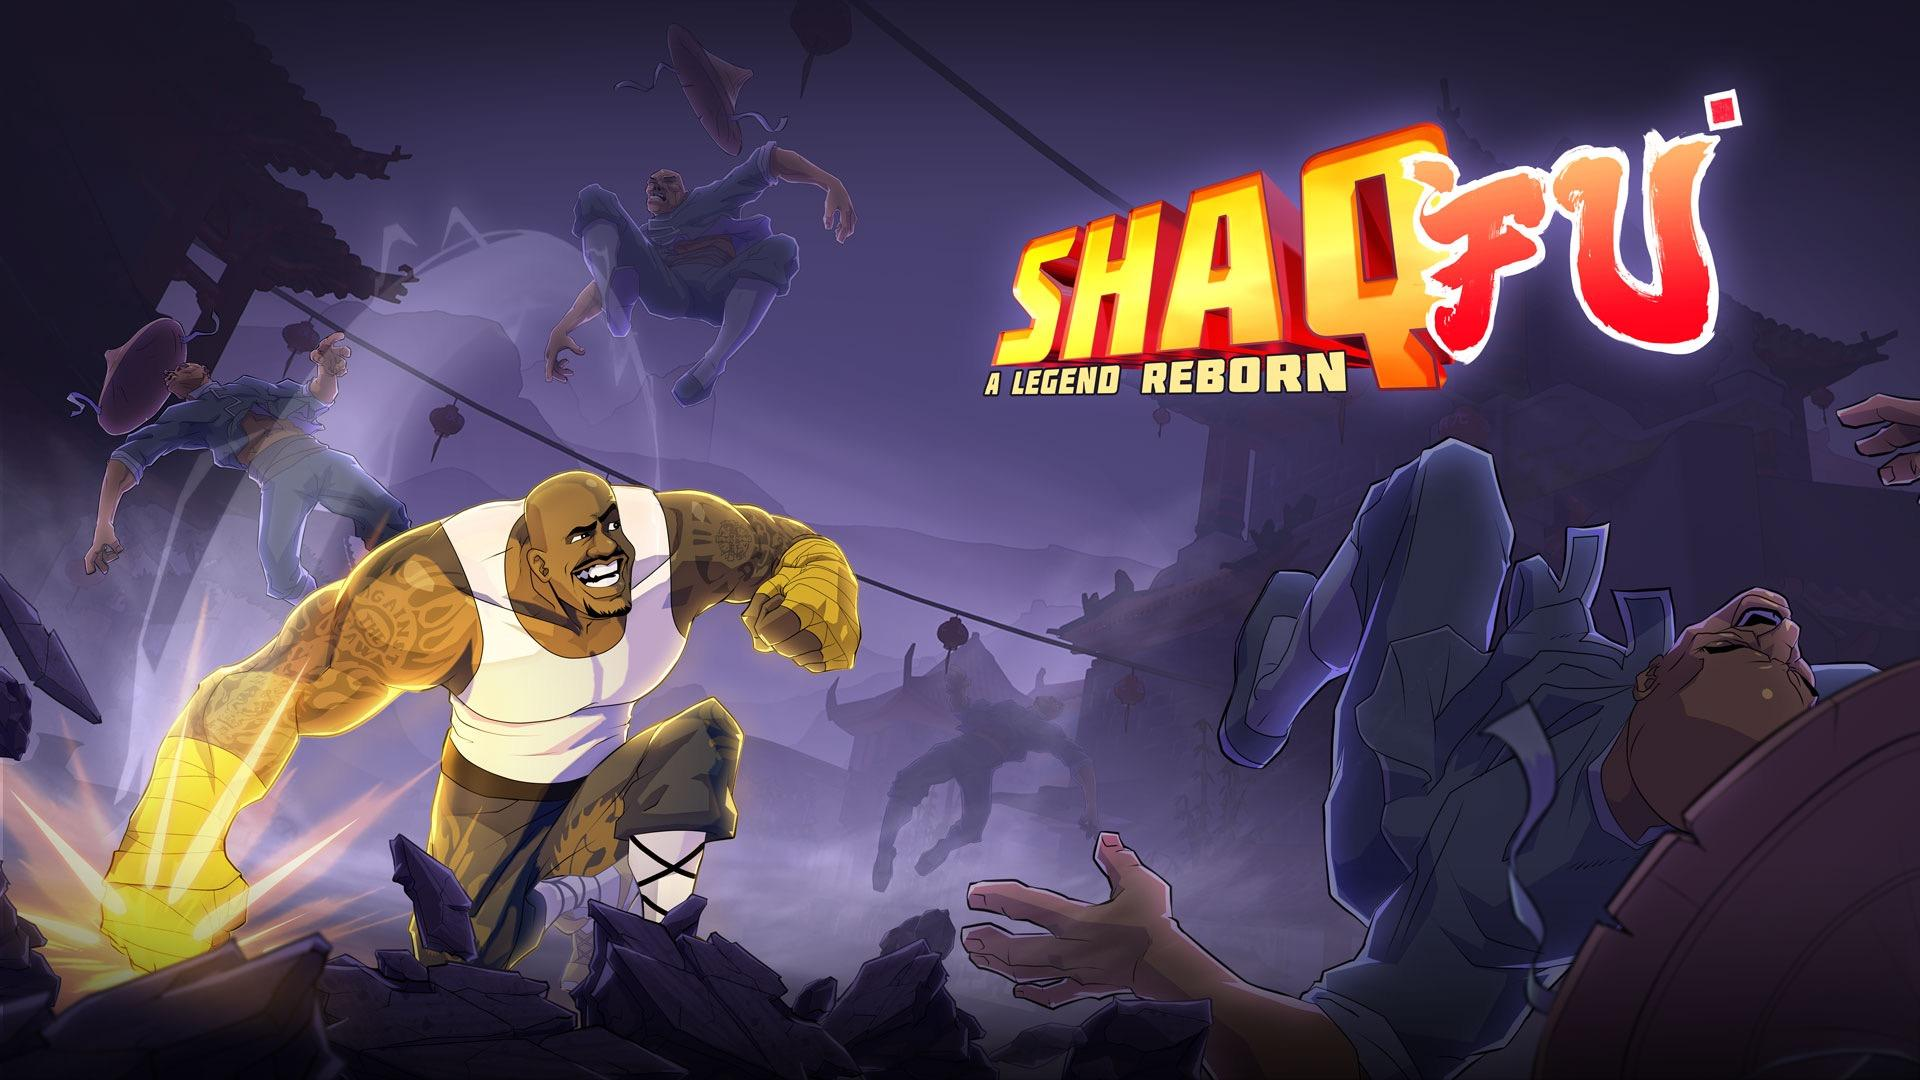 Shaq Fu: A Legend Reborn getting physical and digital release this spring